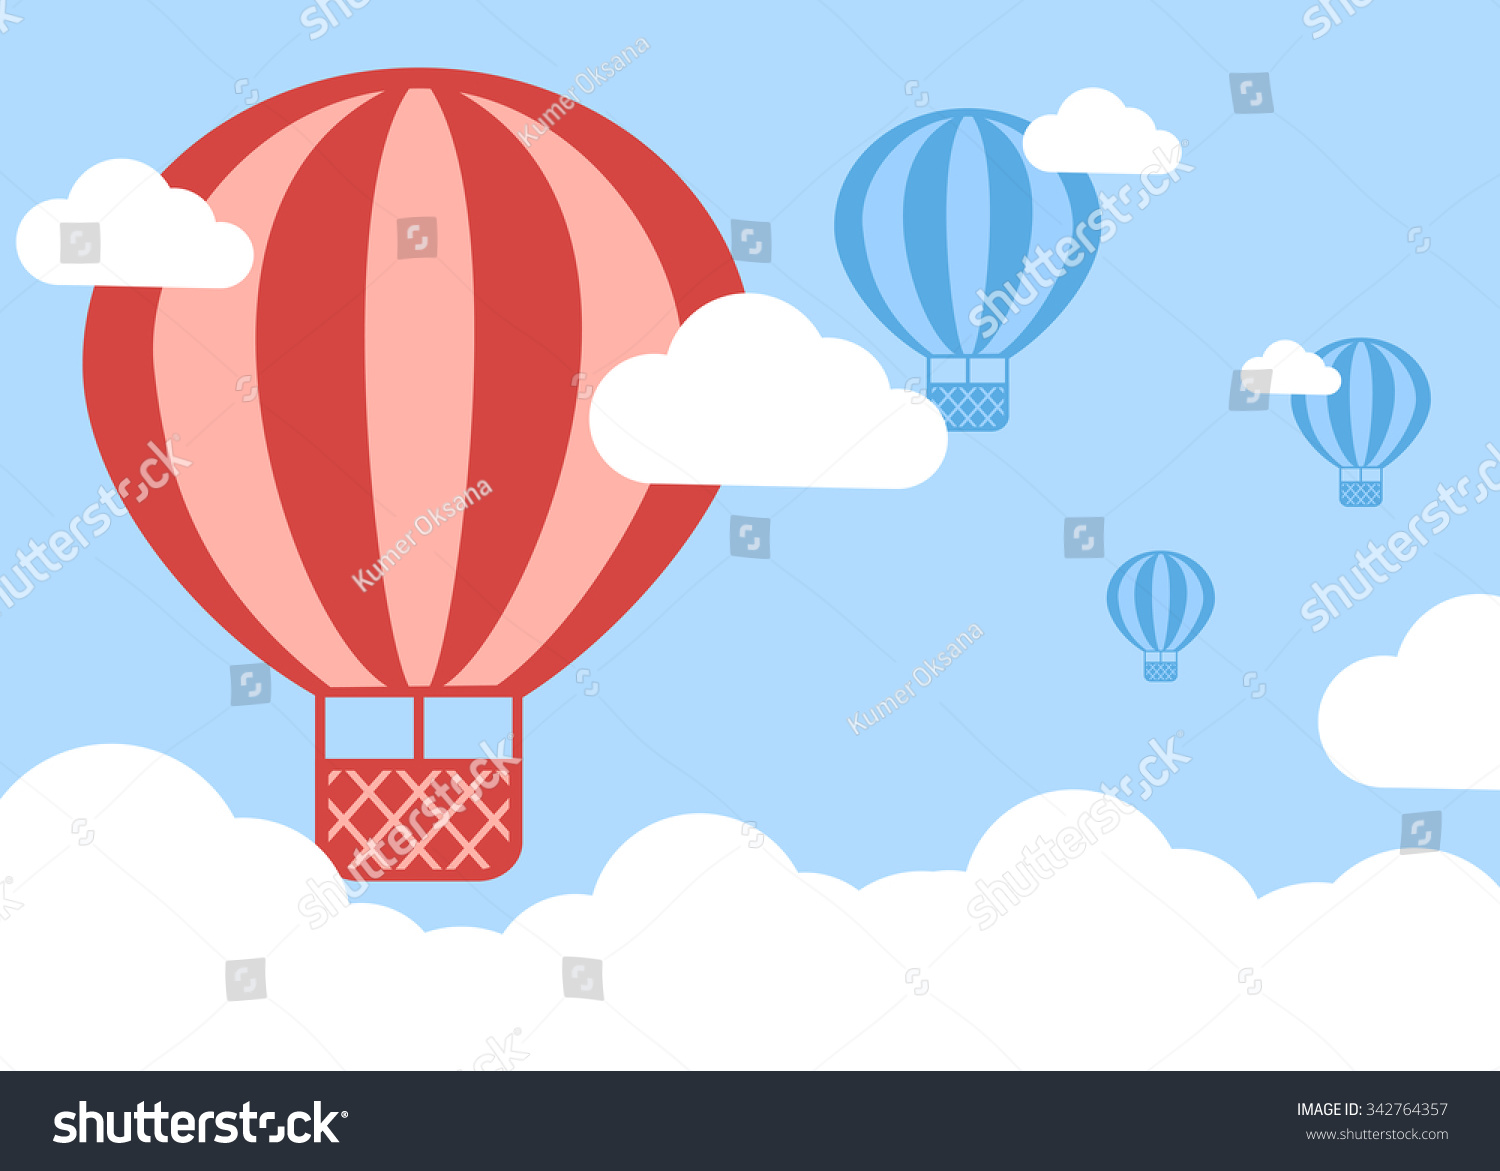 Hot Air Balloon Over Clouds Background Stock Illustration - Royalty ...